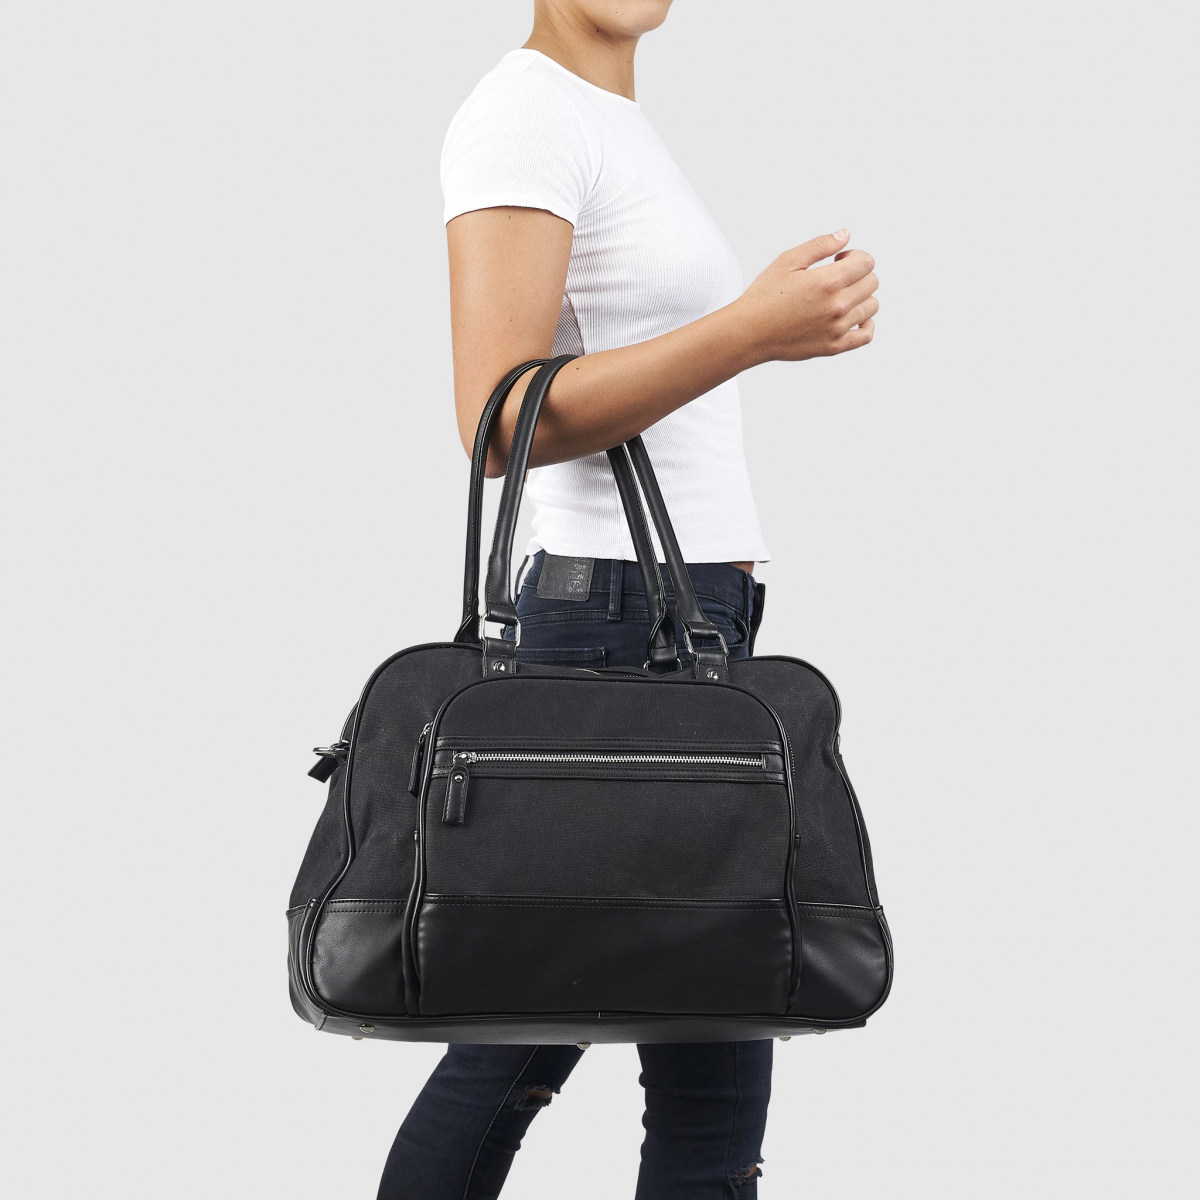 Overnight Bag By Urban Originals, Vegan Leather Bags